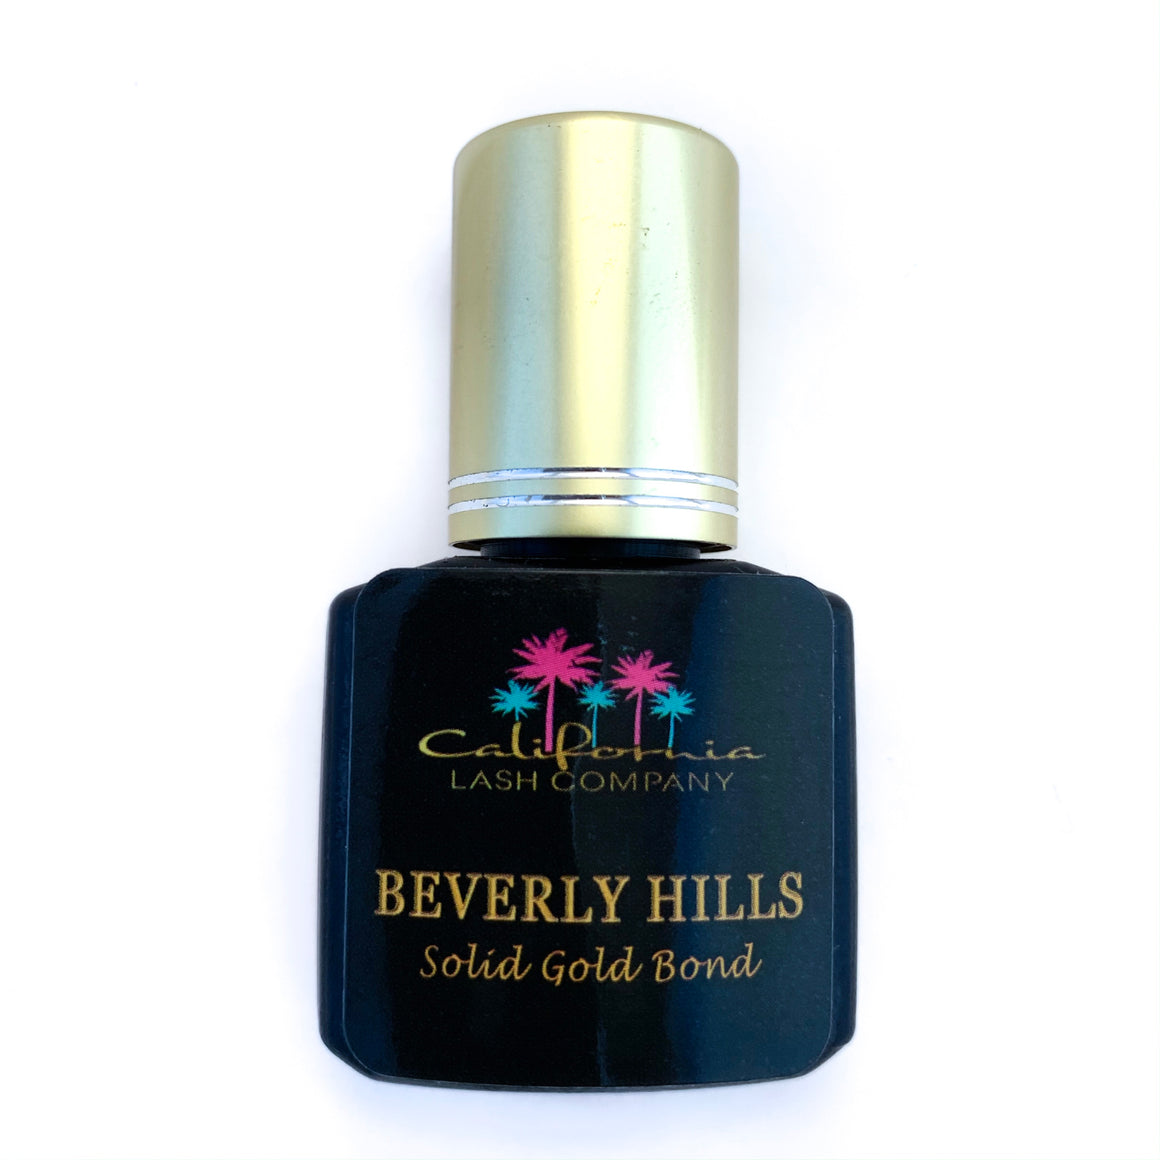 Beverly Hills Solid Gold Bond